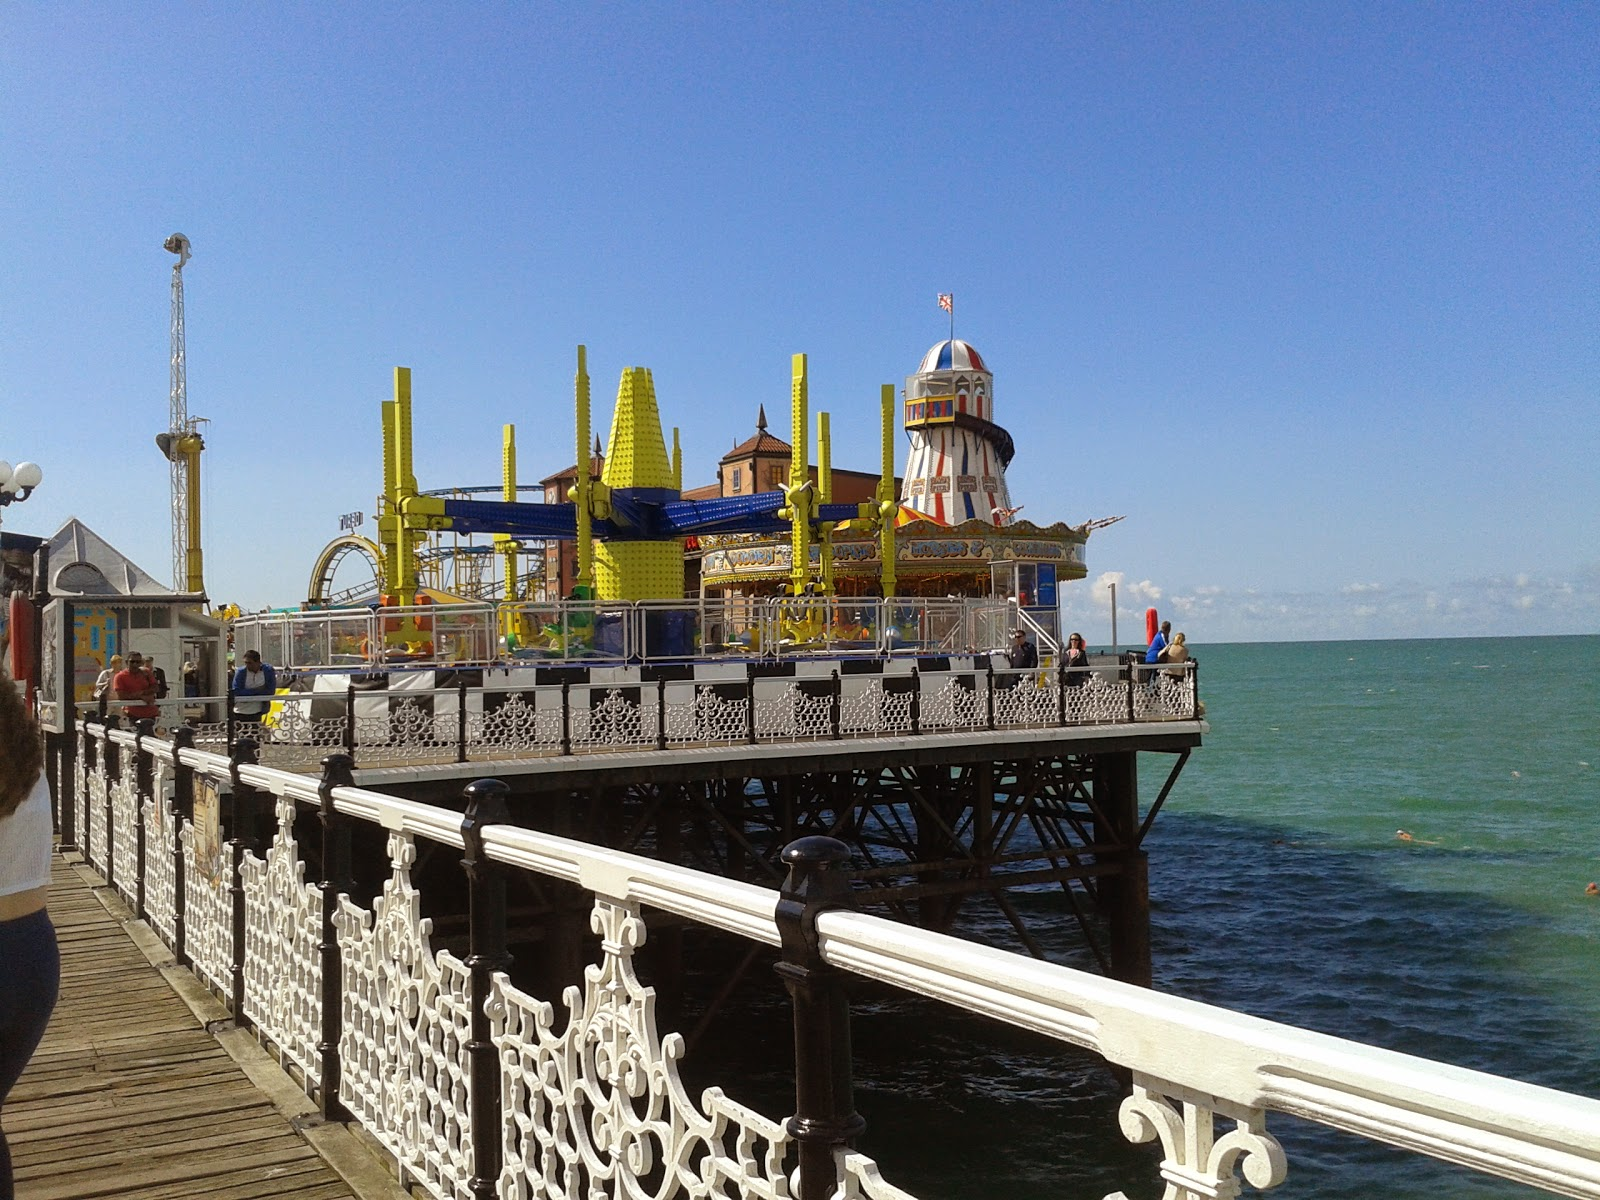 A side shot of some of the rides on Brighton Pier